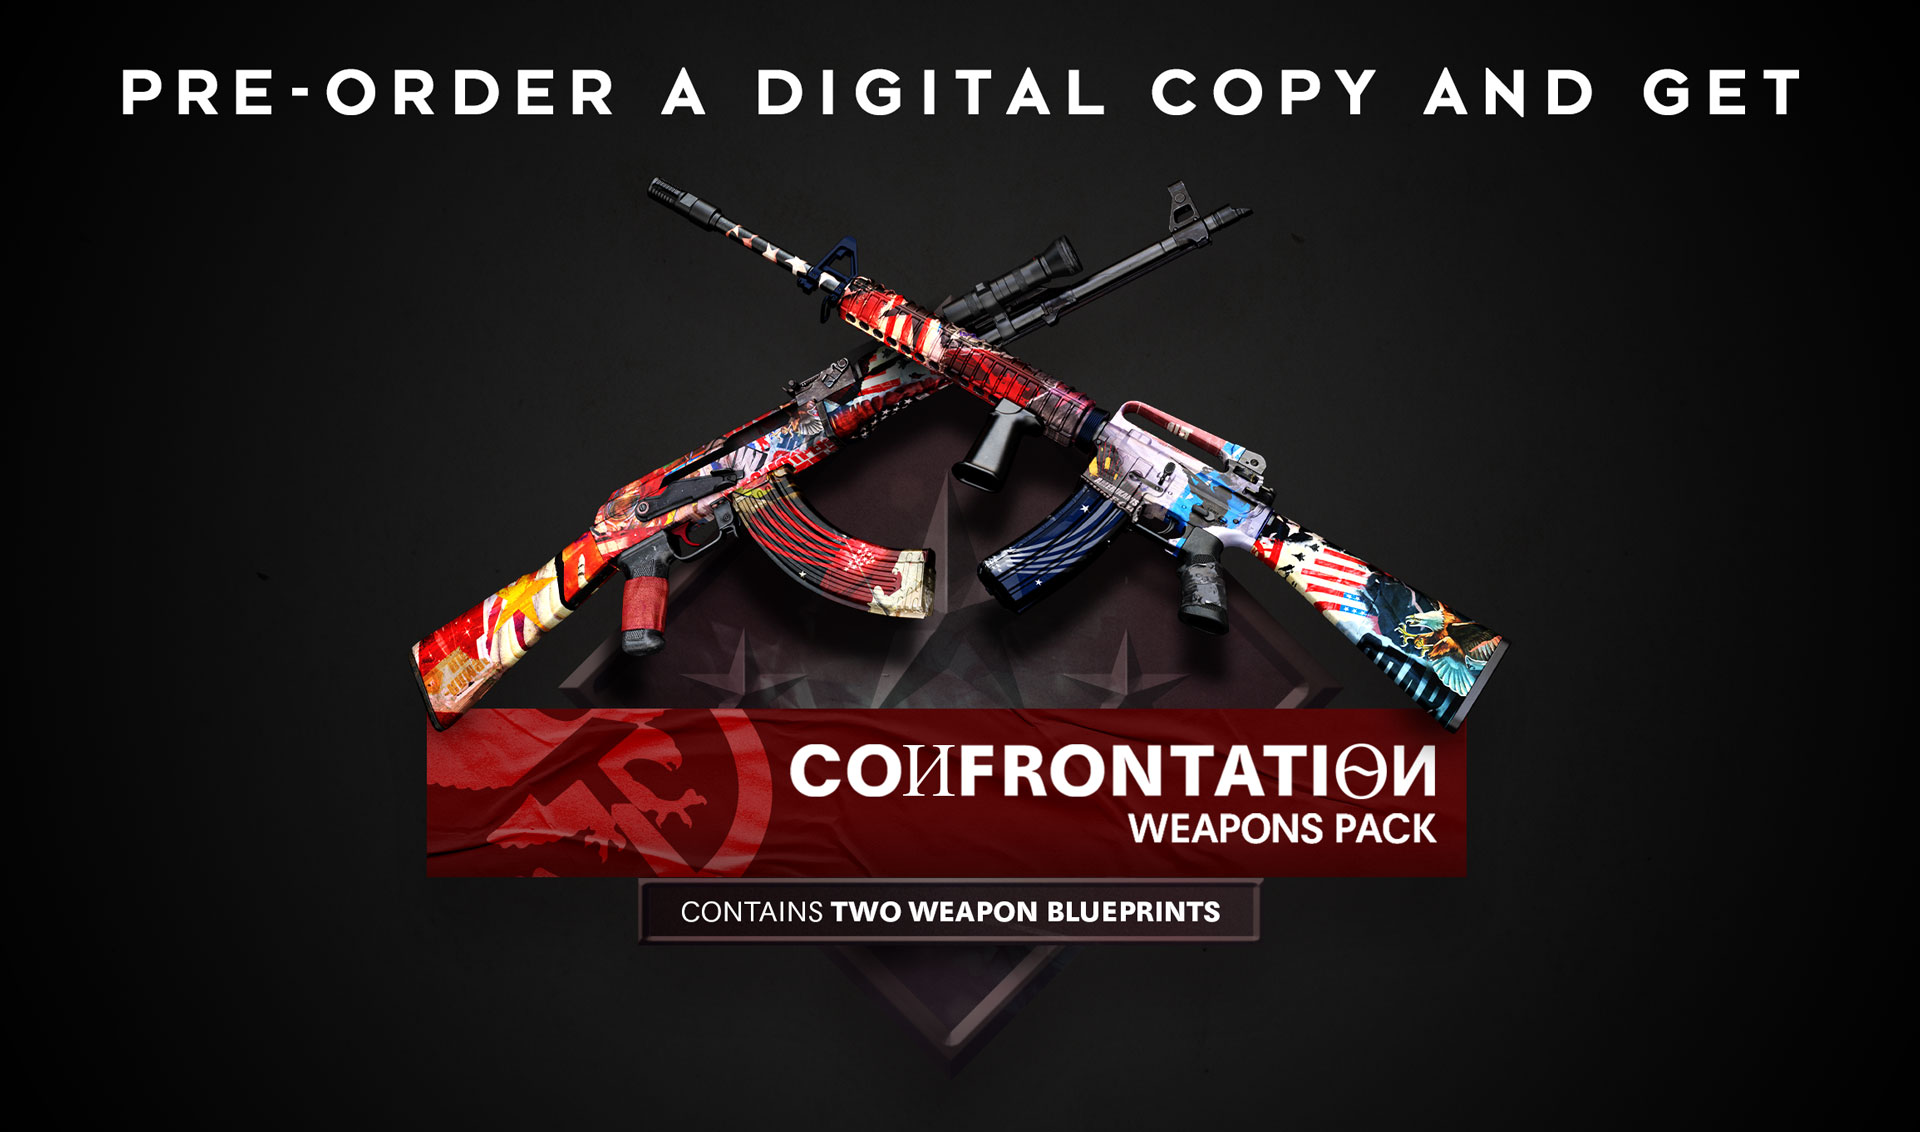 The Iron Curtain and the Western Front rifles, part of the Confrontation Weapons Pack